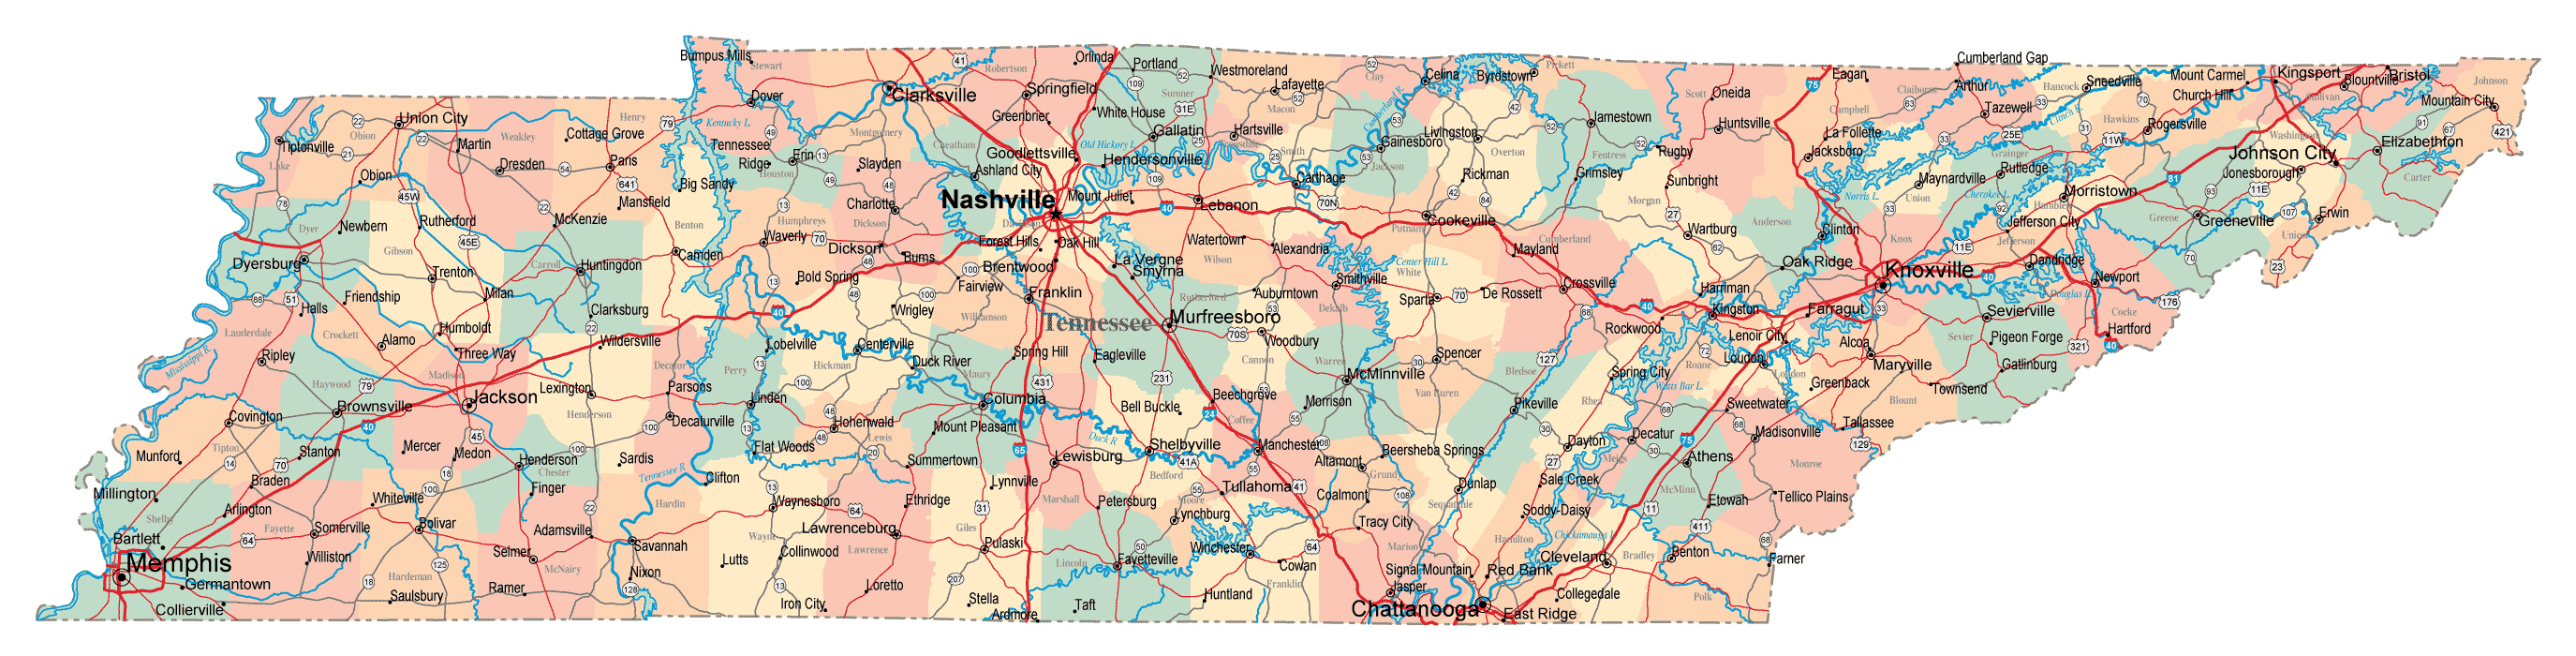 Large administrative map of Tennessee state with roads highways and